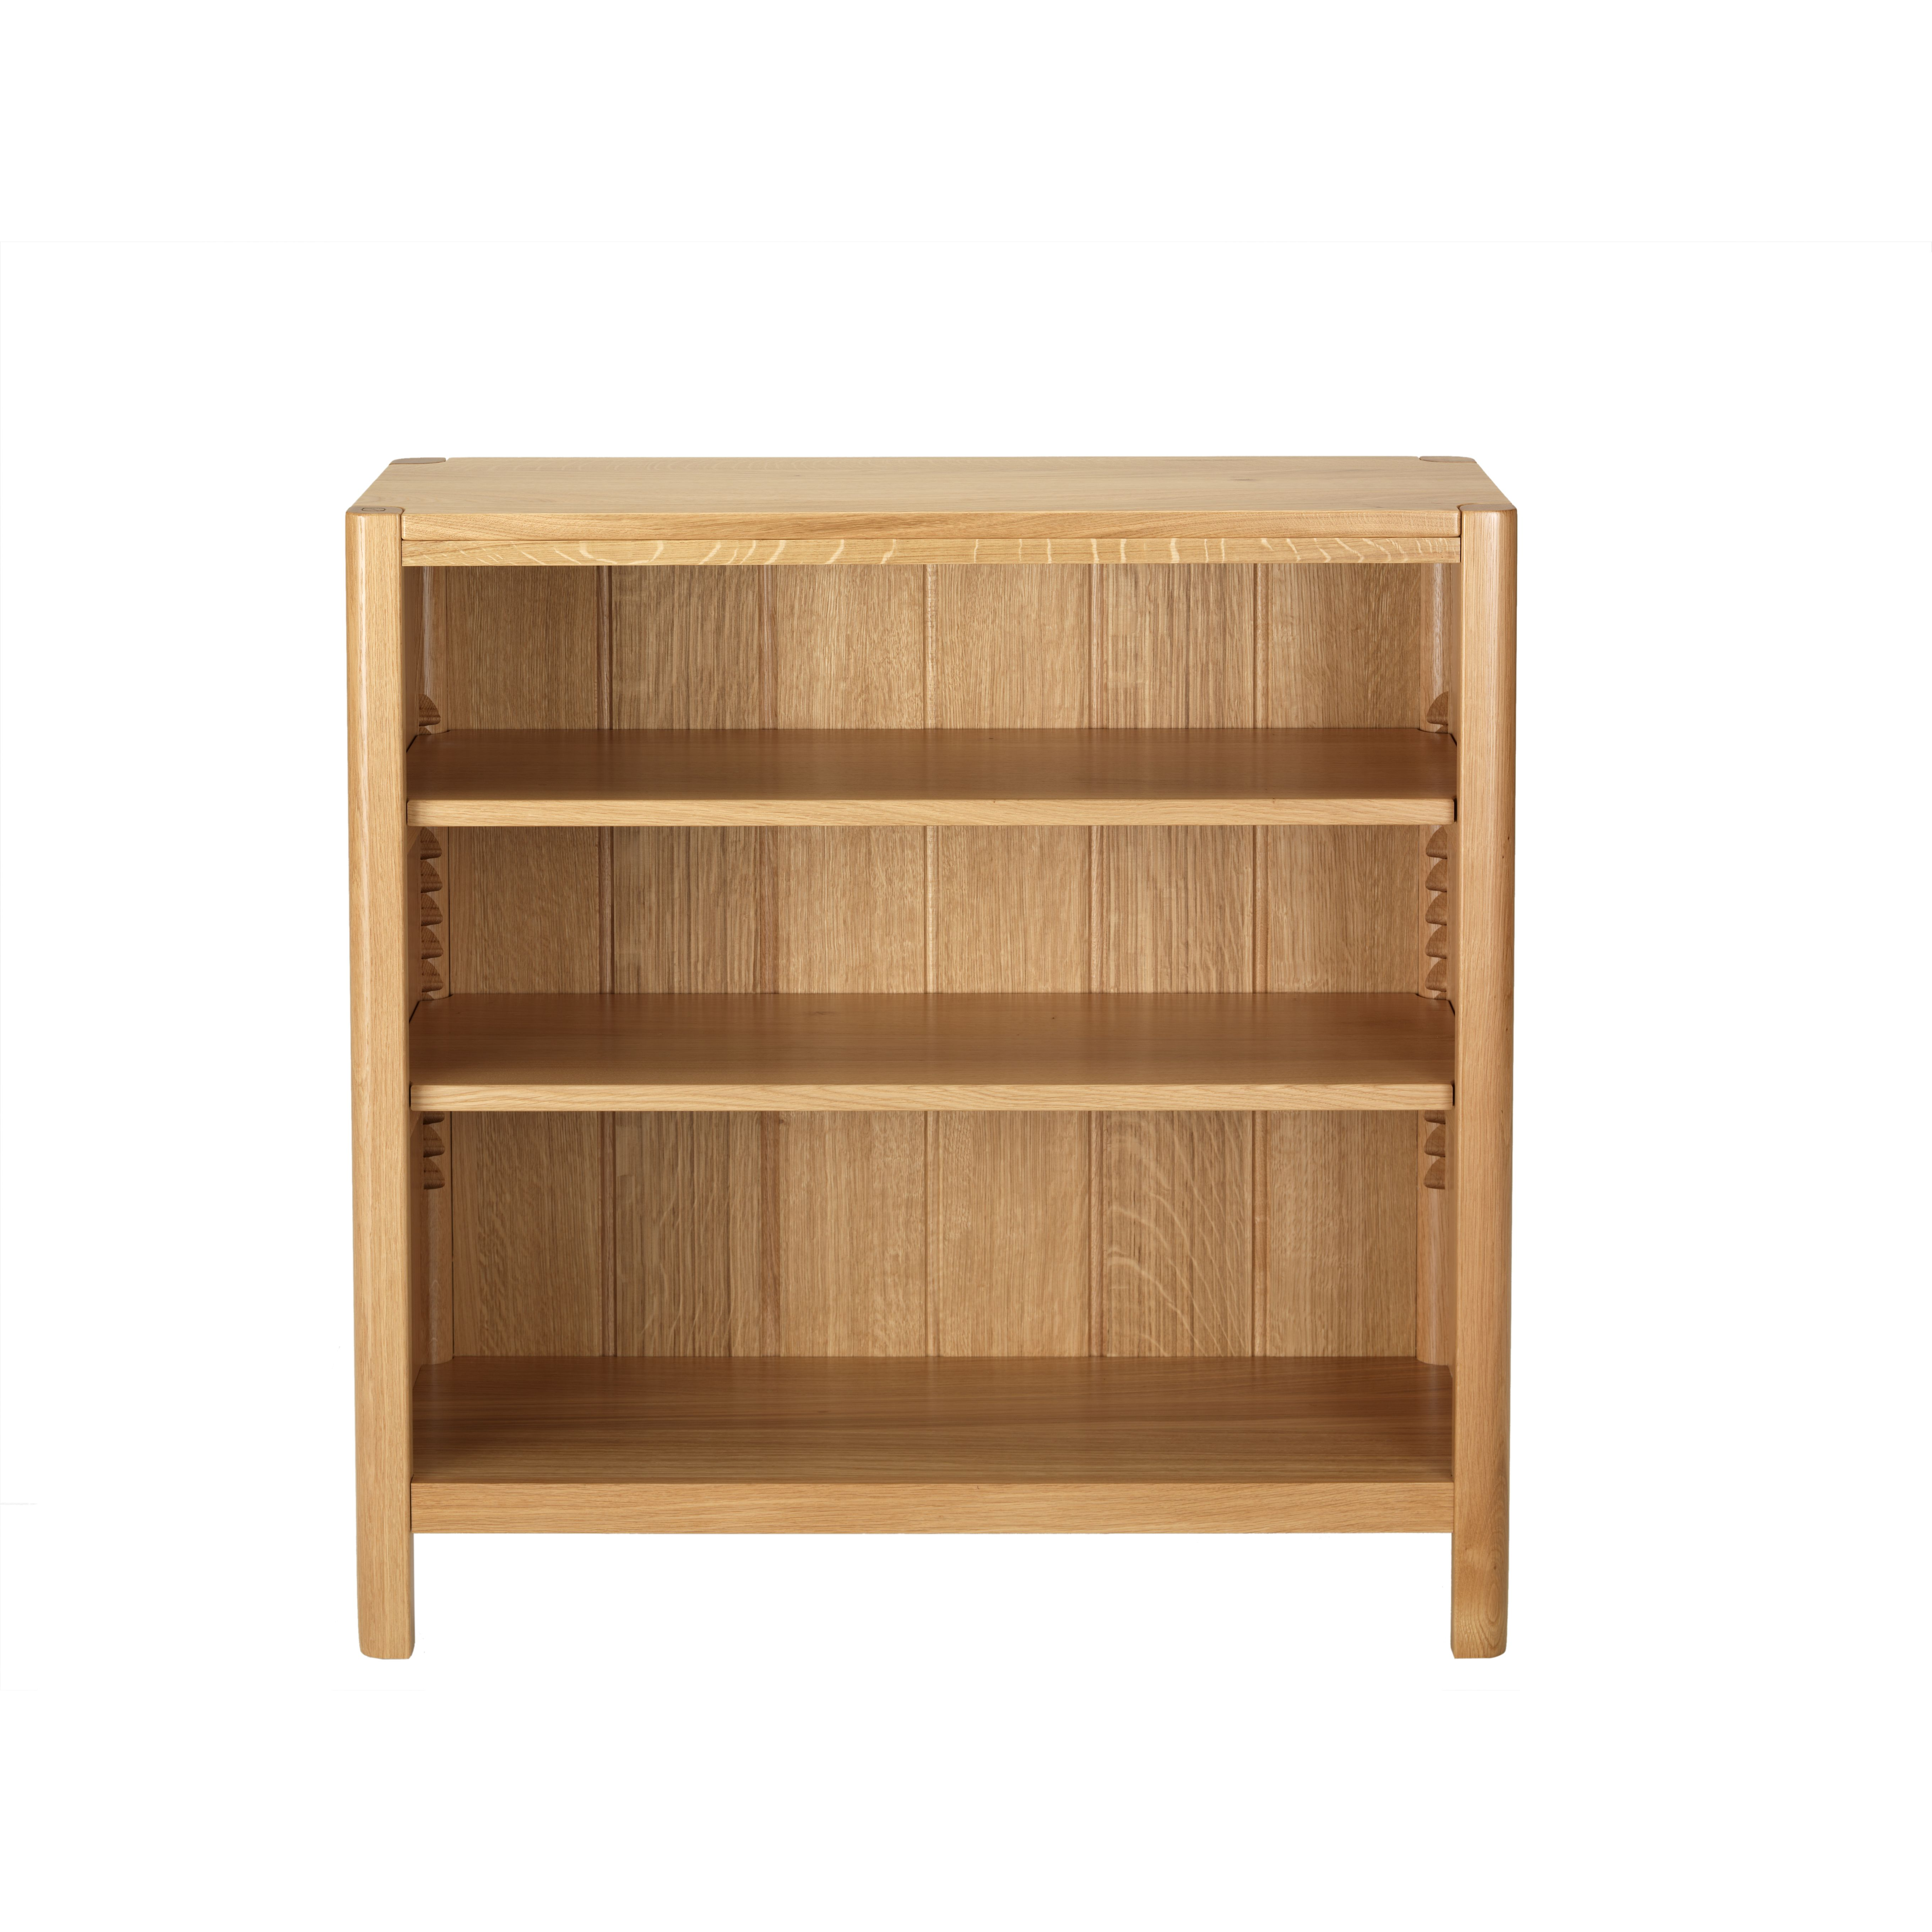 Oak Bookcase Low Wide Shallow Citrus Collection 90 Cm25 Cm90 Cm 399